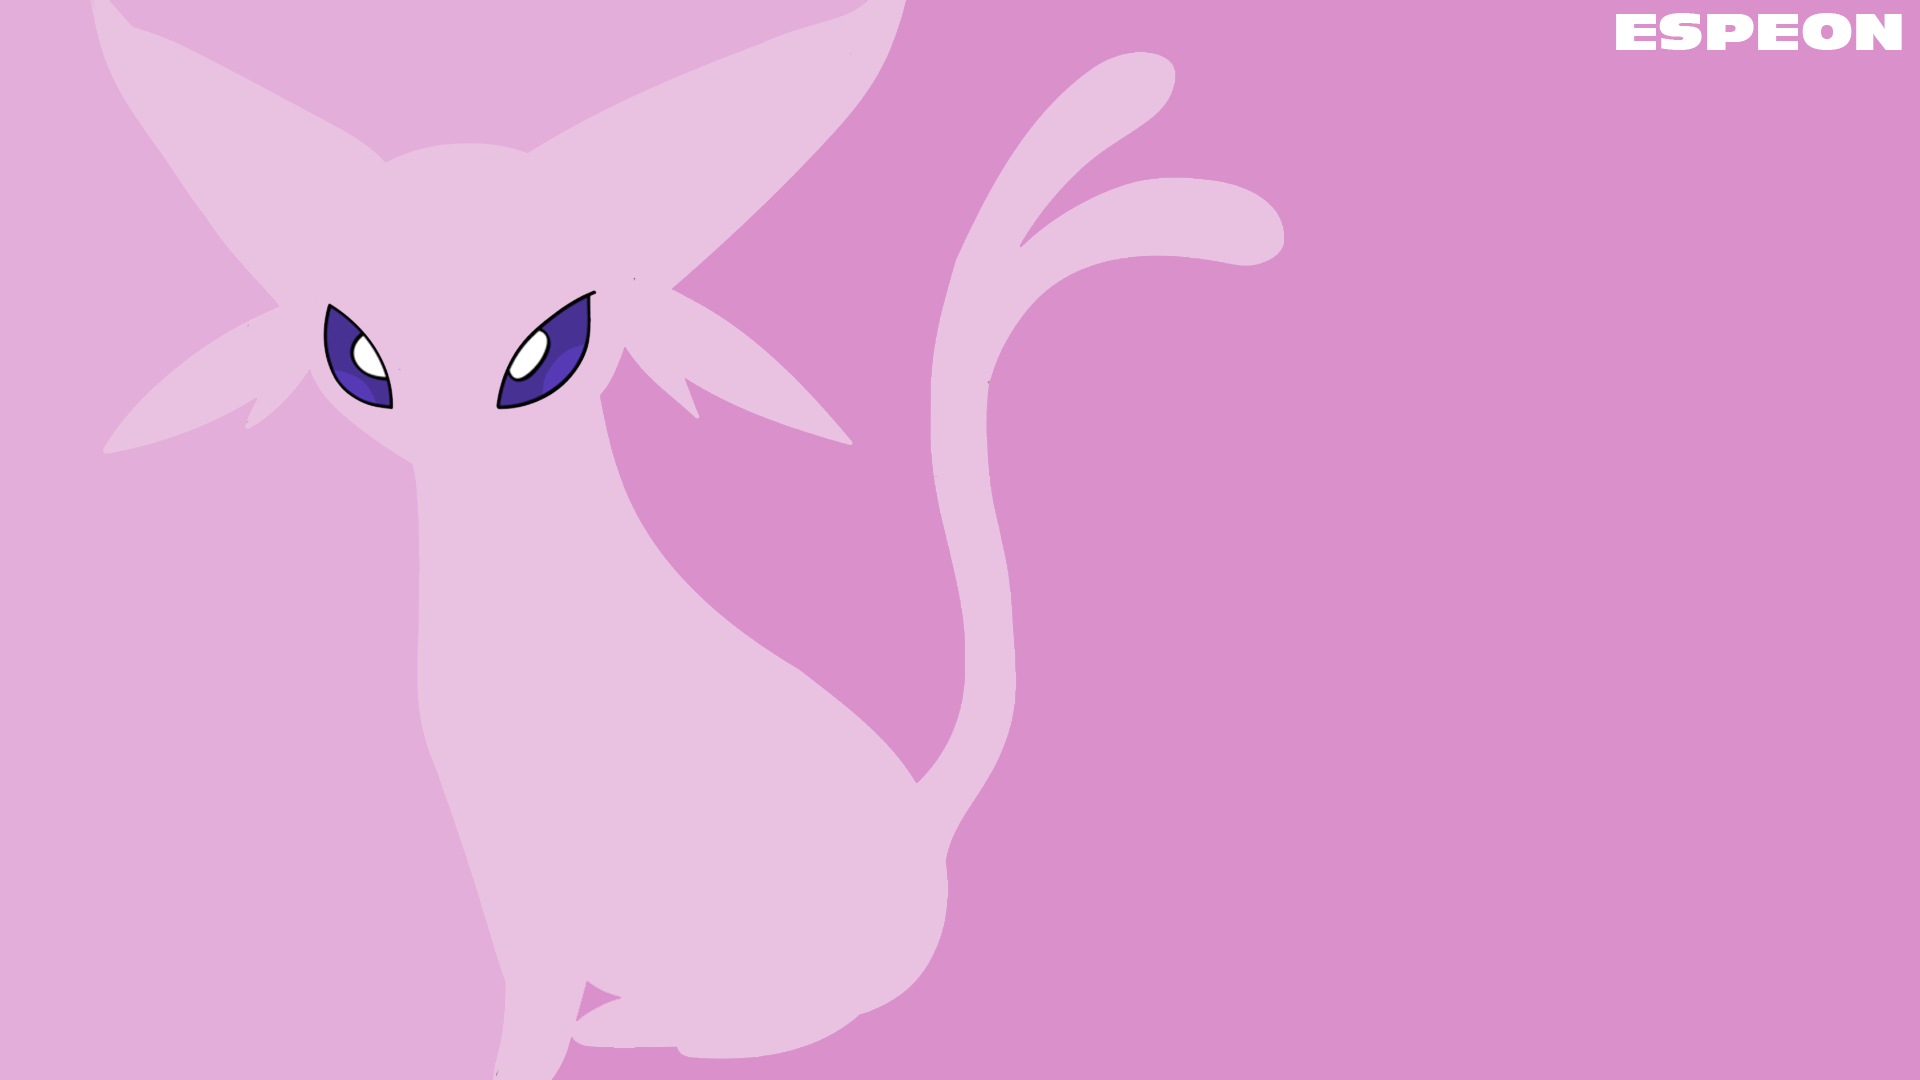 Espeon Backgrounds Free Download